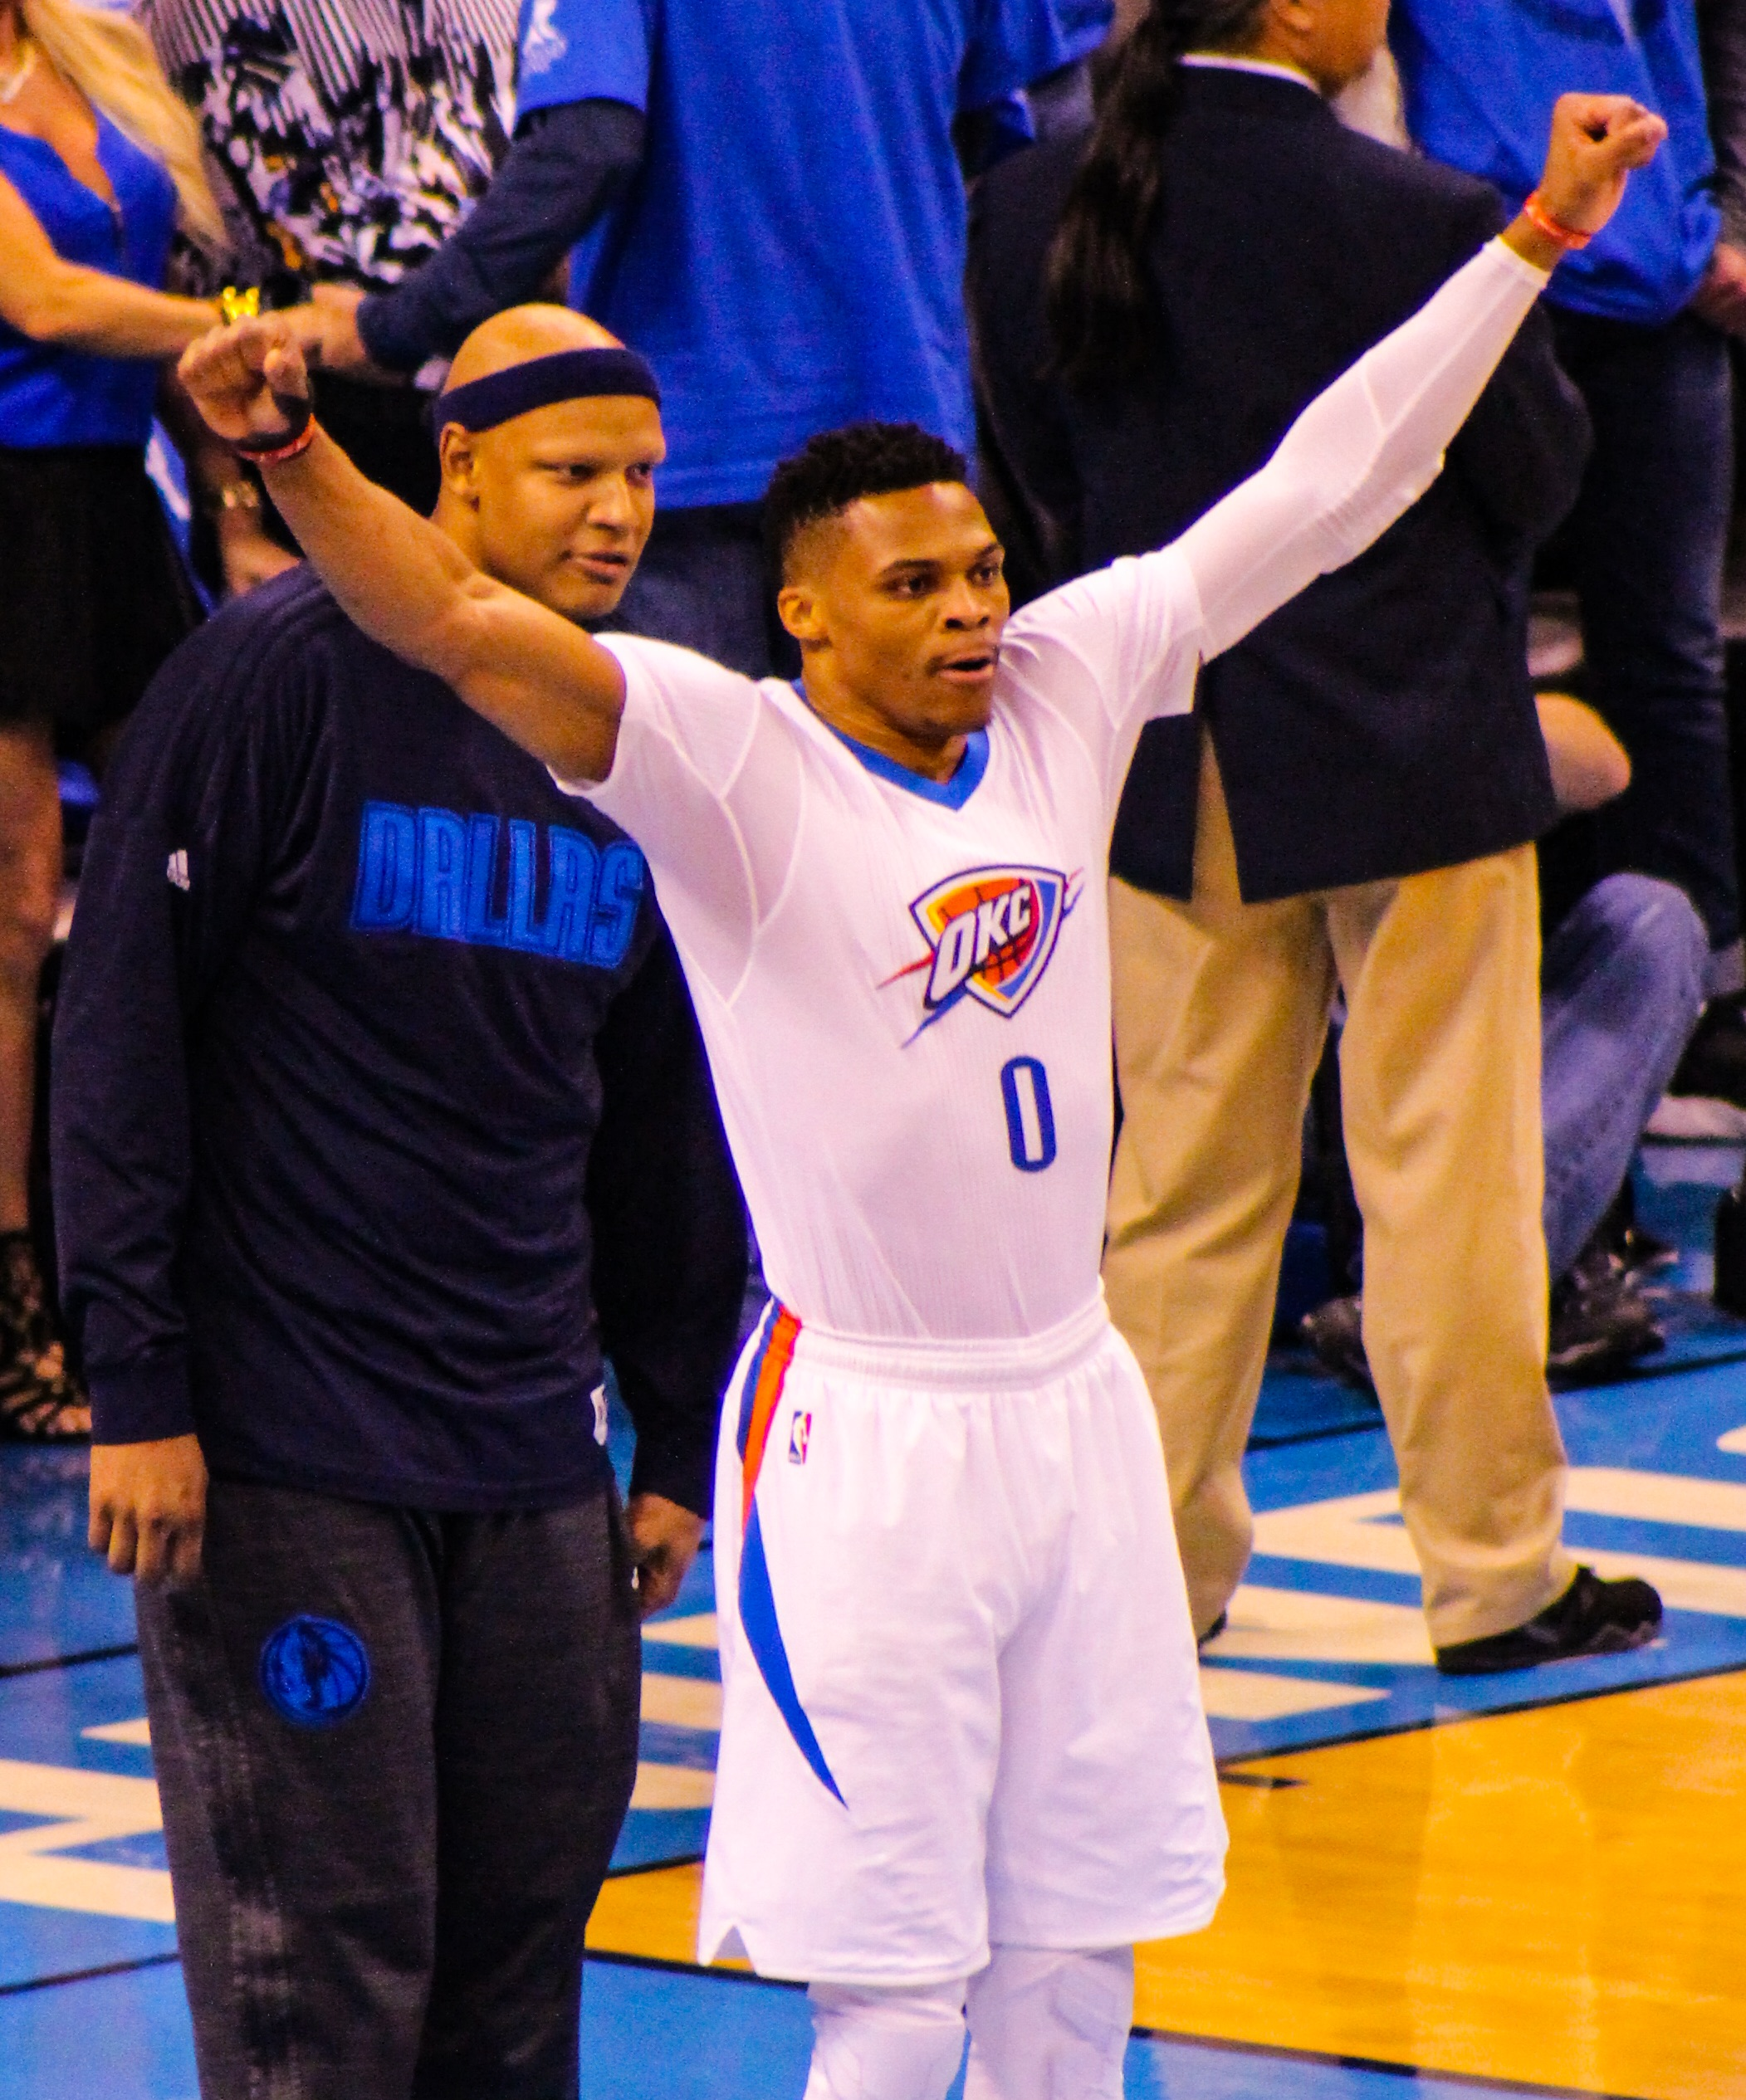 Mavs forward Charlie Villanueva talking to Thunder guard Russell Westbrook just before tipoff of Monday's Game 5. (Photo by Sam Murch for InsideThunder.com)